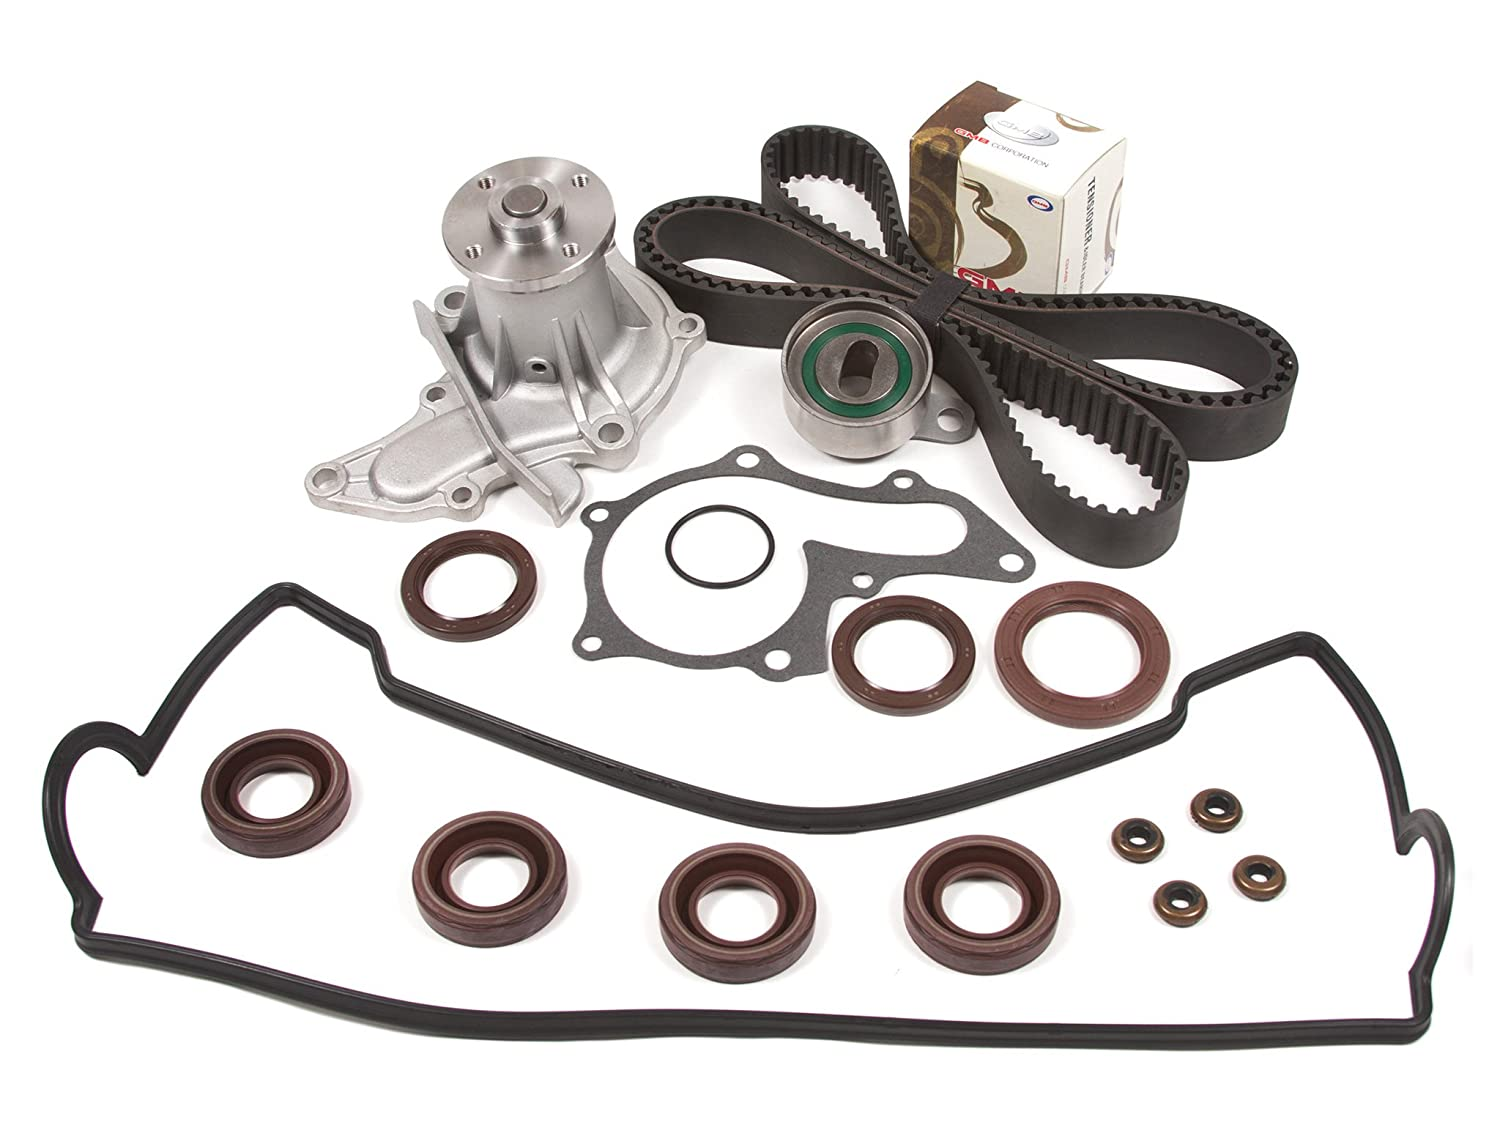 Amazon.com: Evergreen TBK236VCT 93-97 Geo Prizm Toyota Corolla 1.6L 4AFE Timing  Belt Kit Valve Cover Gasket Water Pump: Automotive